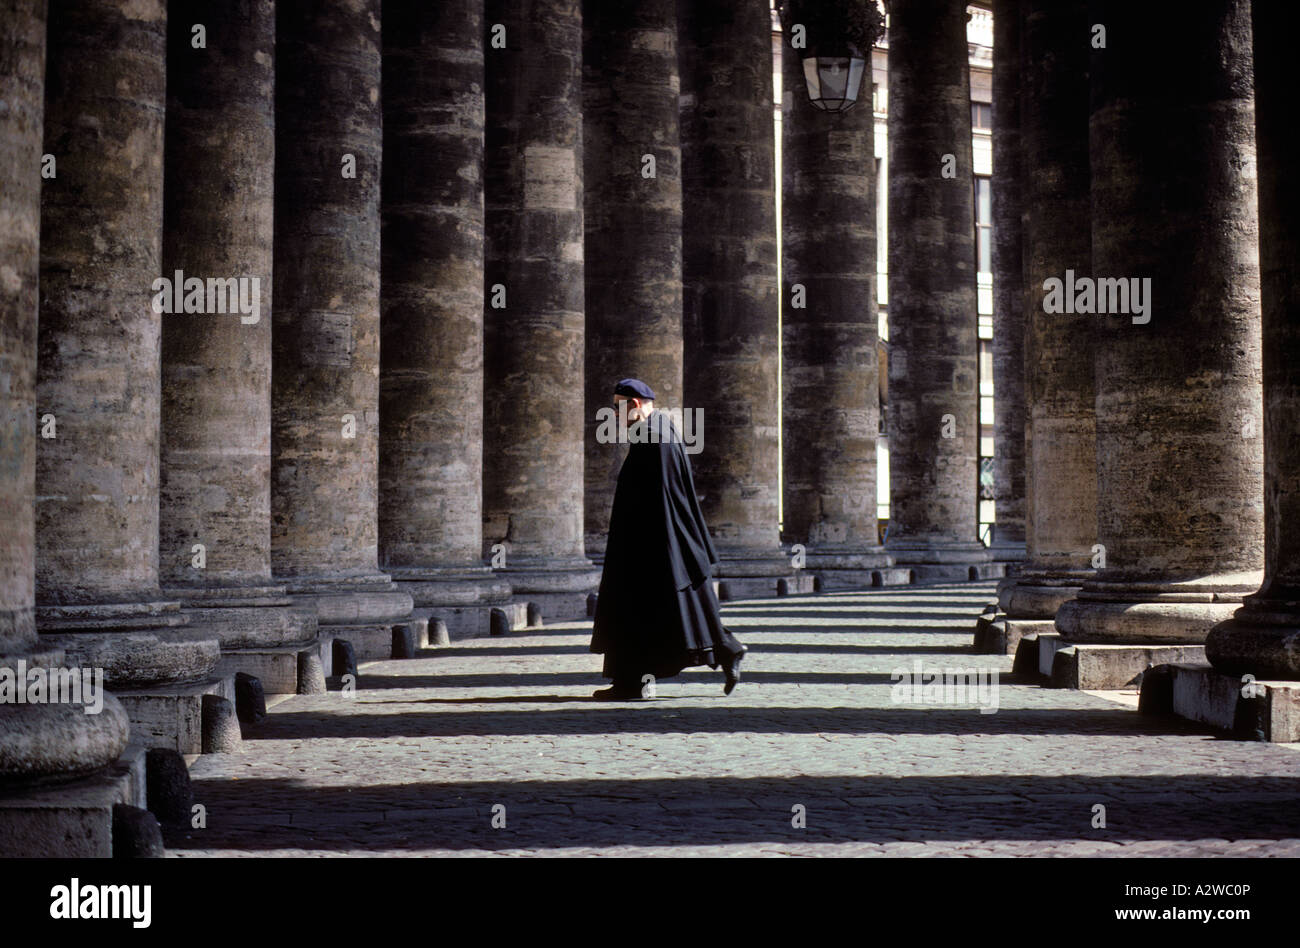 Canapé Italien St Priest Italy Rome Vatican City Priest Walking Through The